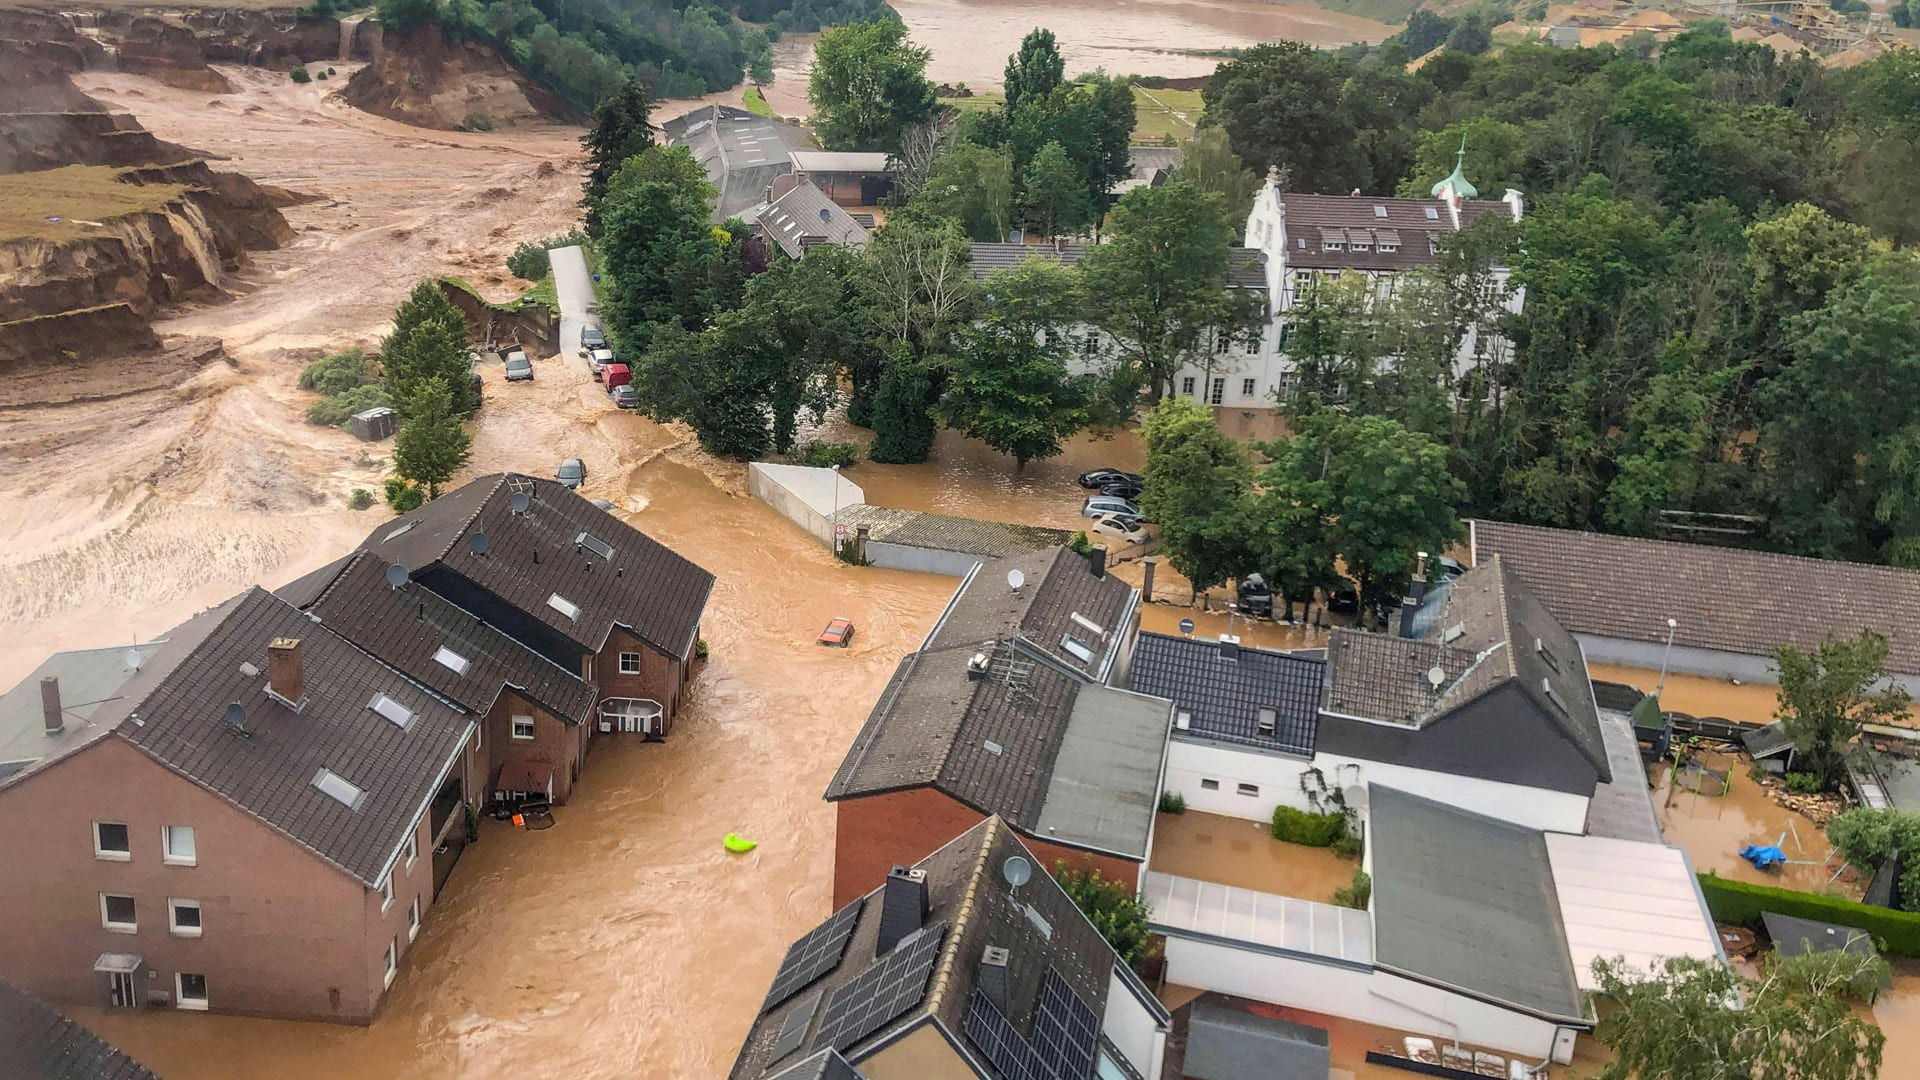 At least 120 dead due to flooding in Germany and Belgium